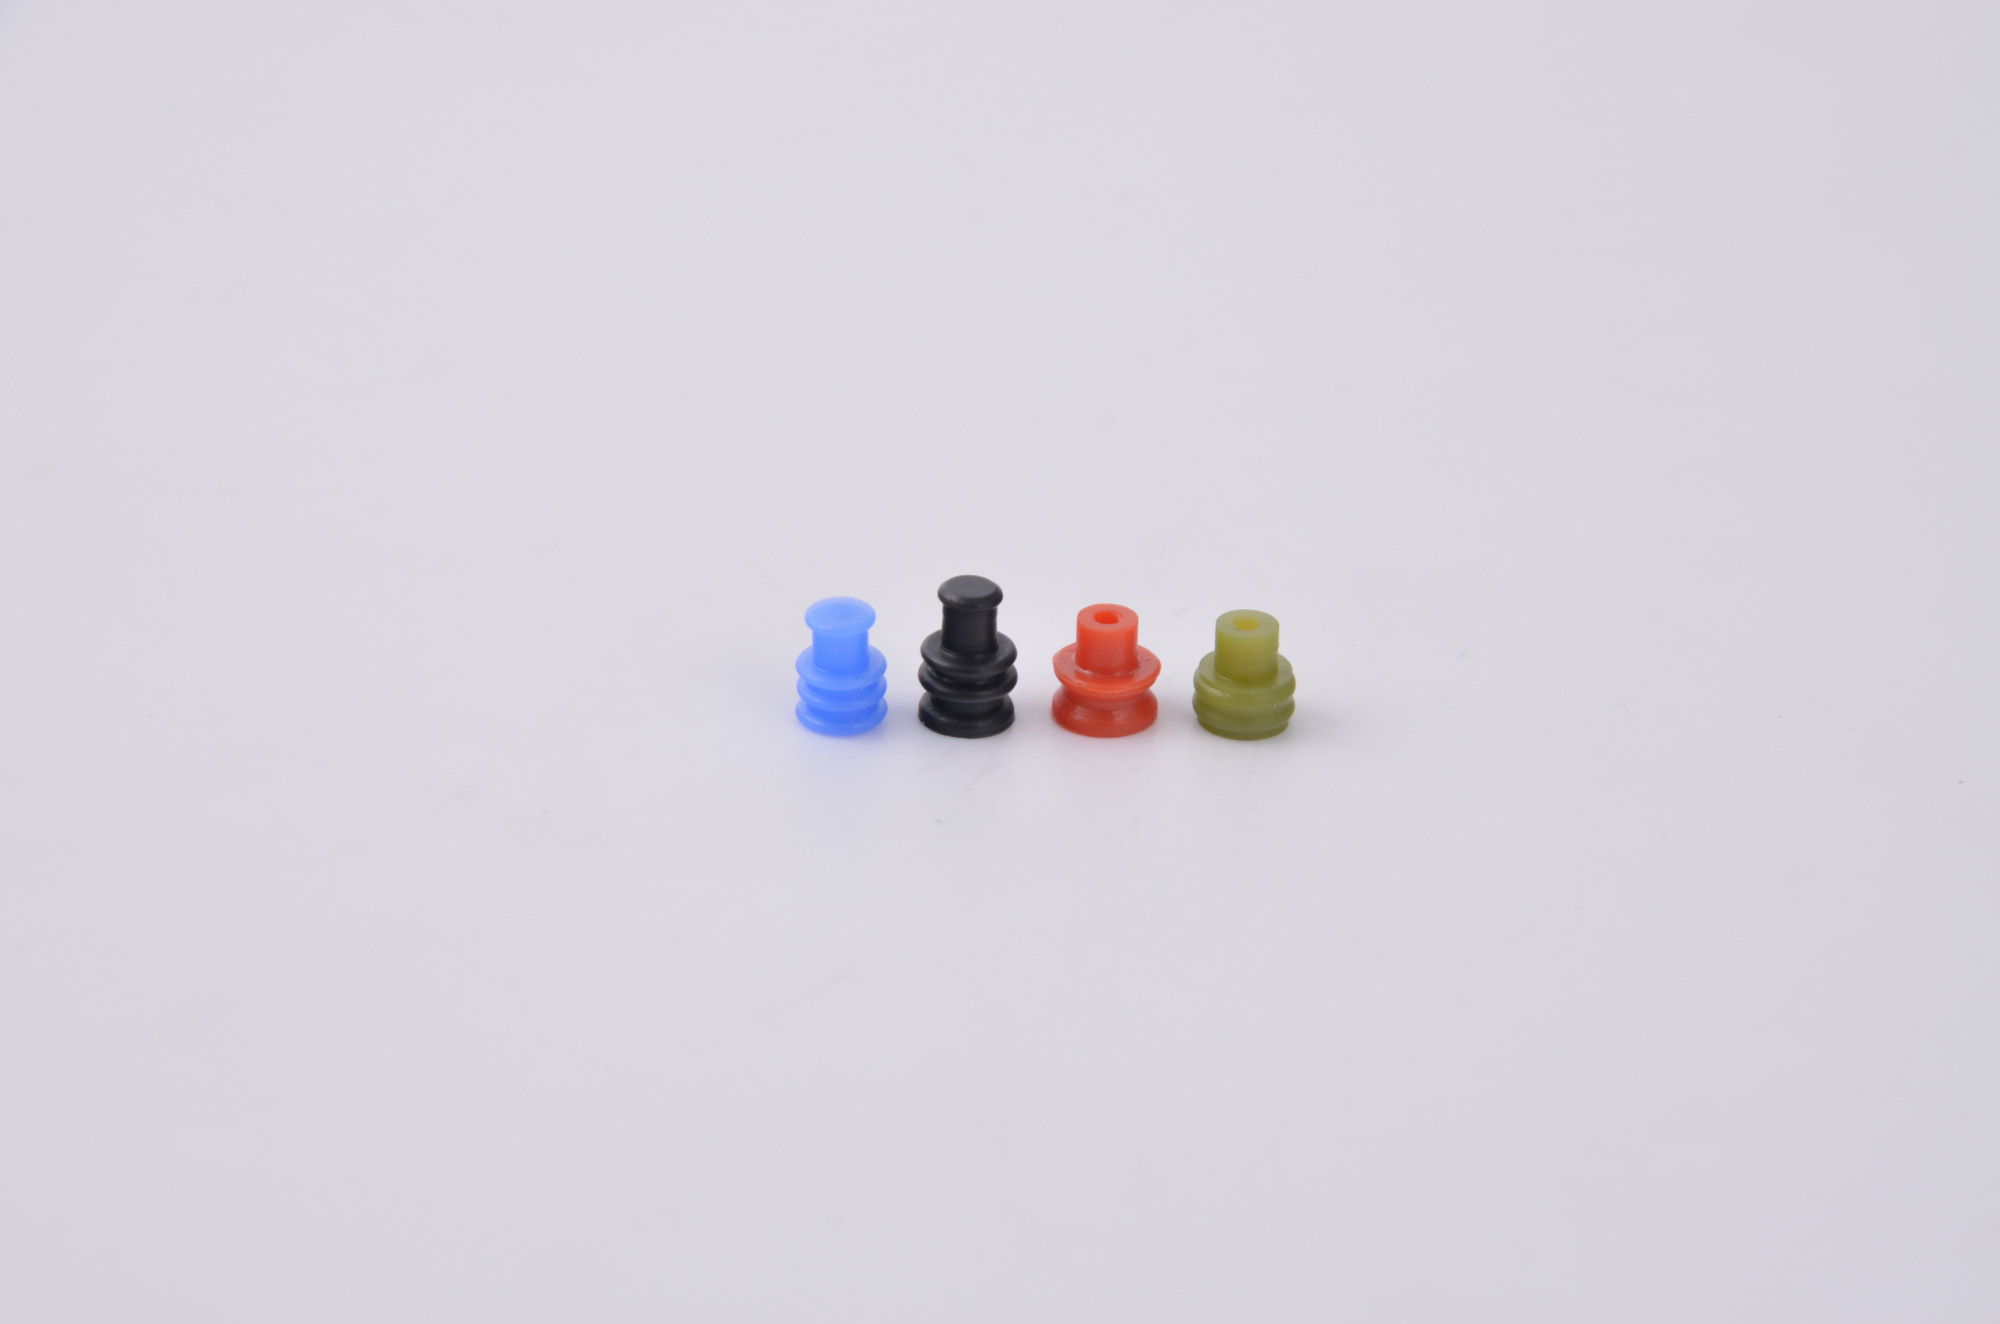 Silicone stopper Manufacturers, Silicone stopper Factory, Silicone stopper